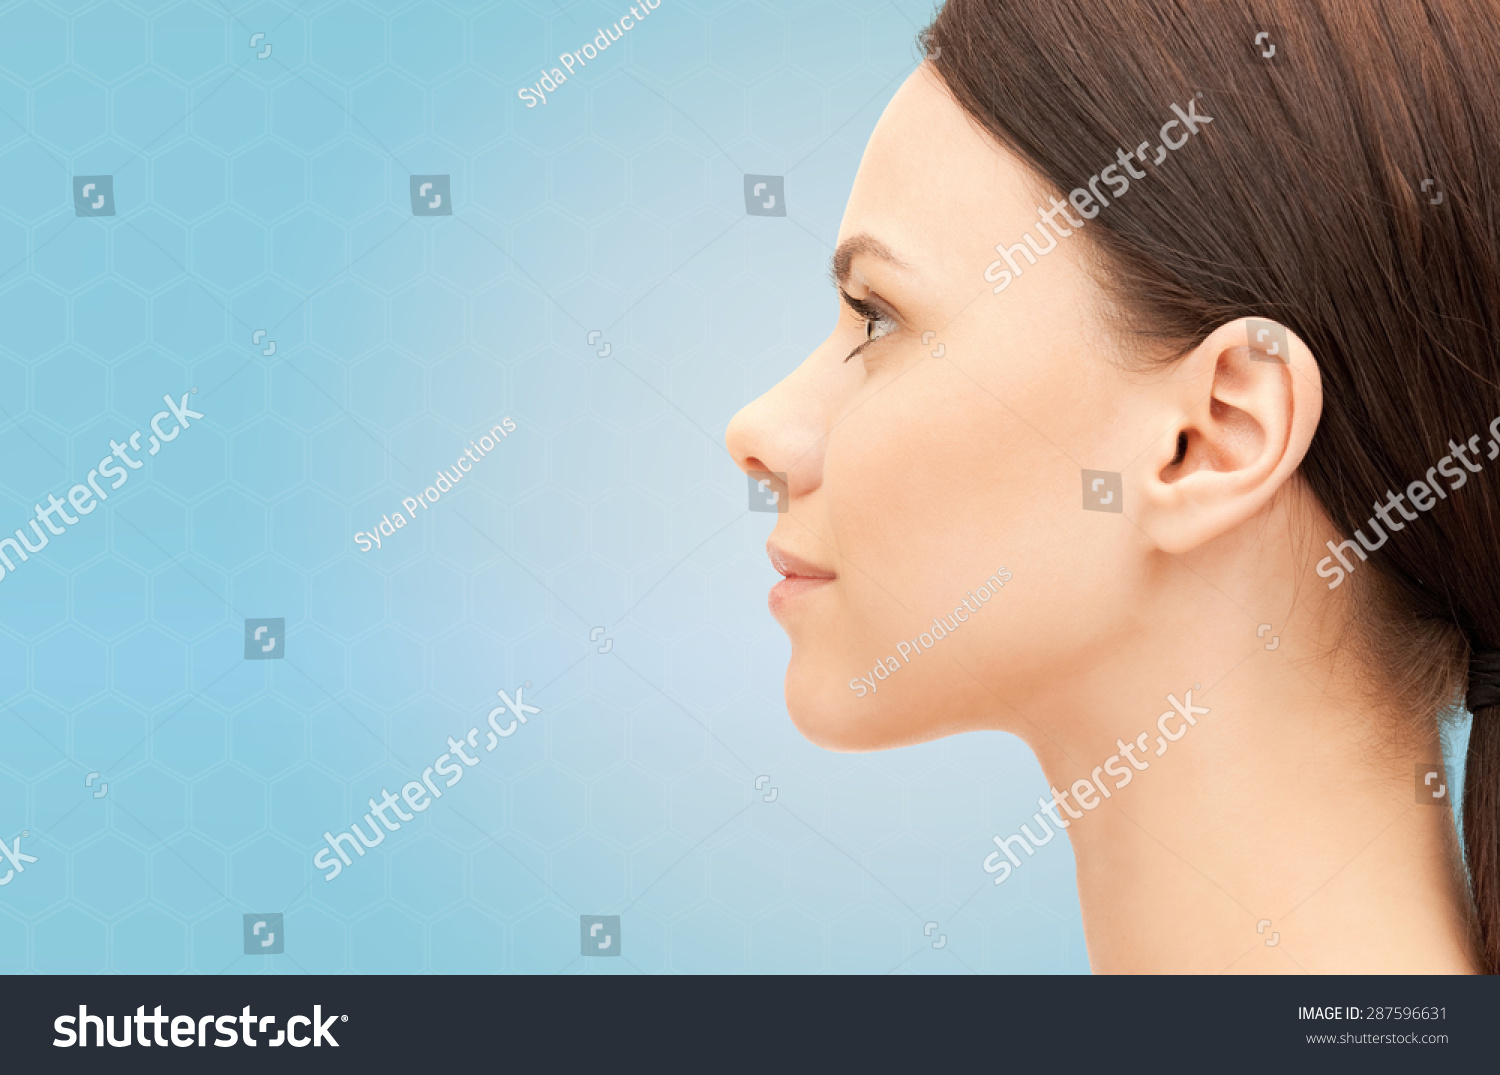 health people plastic surgery beauty concept stock photo